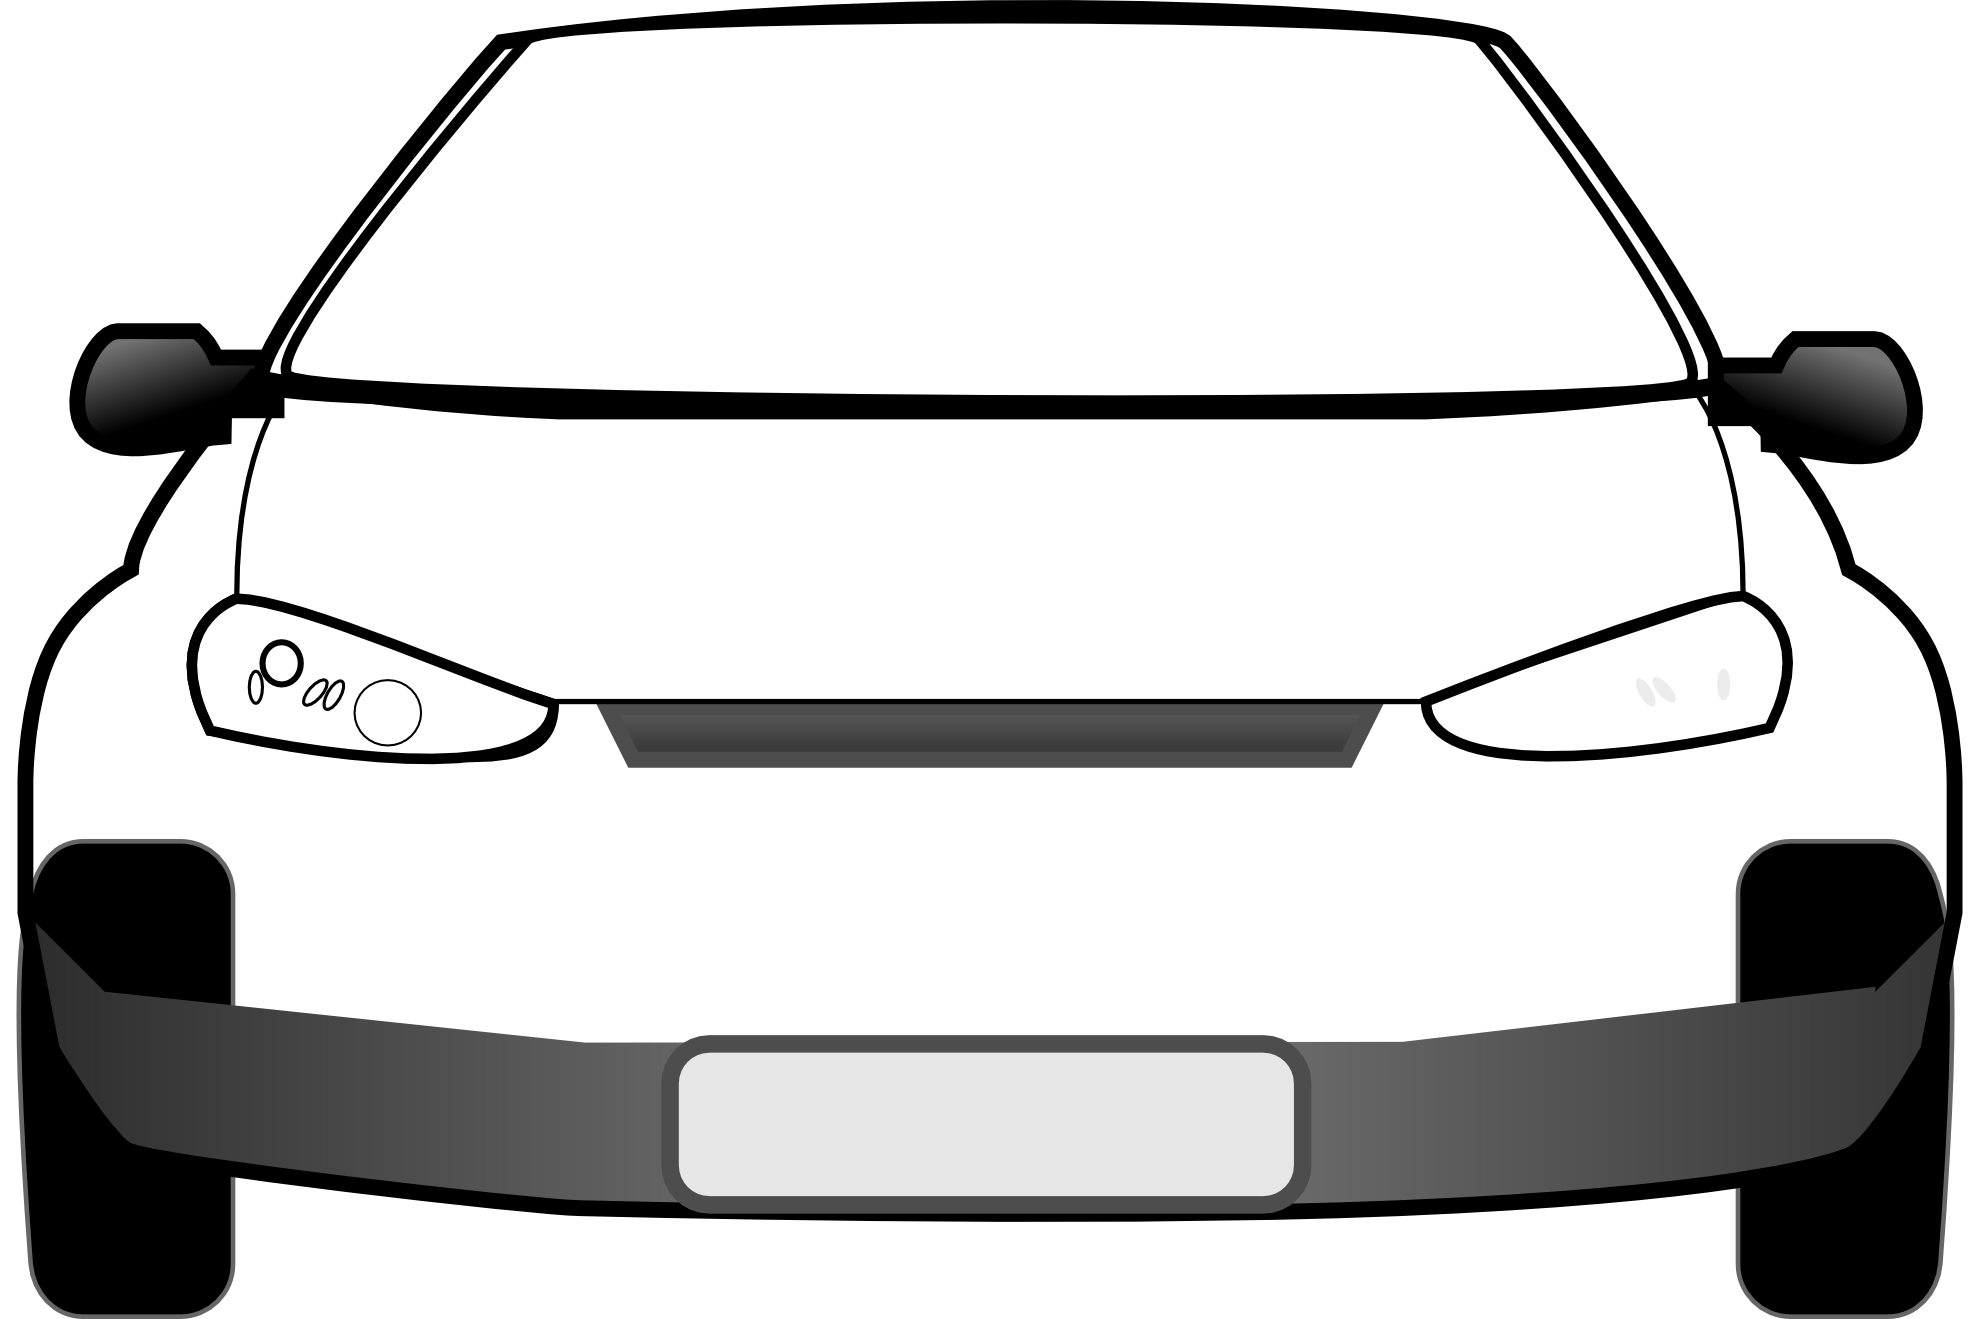 Car Front View Png 8 Car Front View Clipart